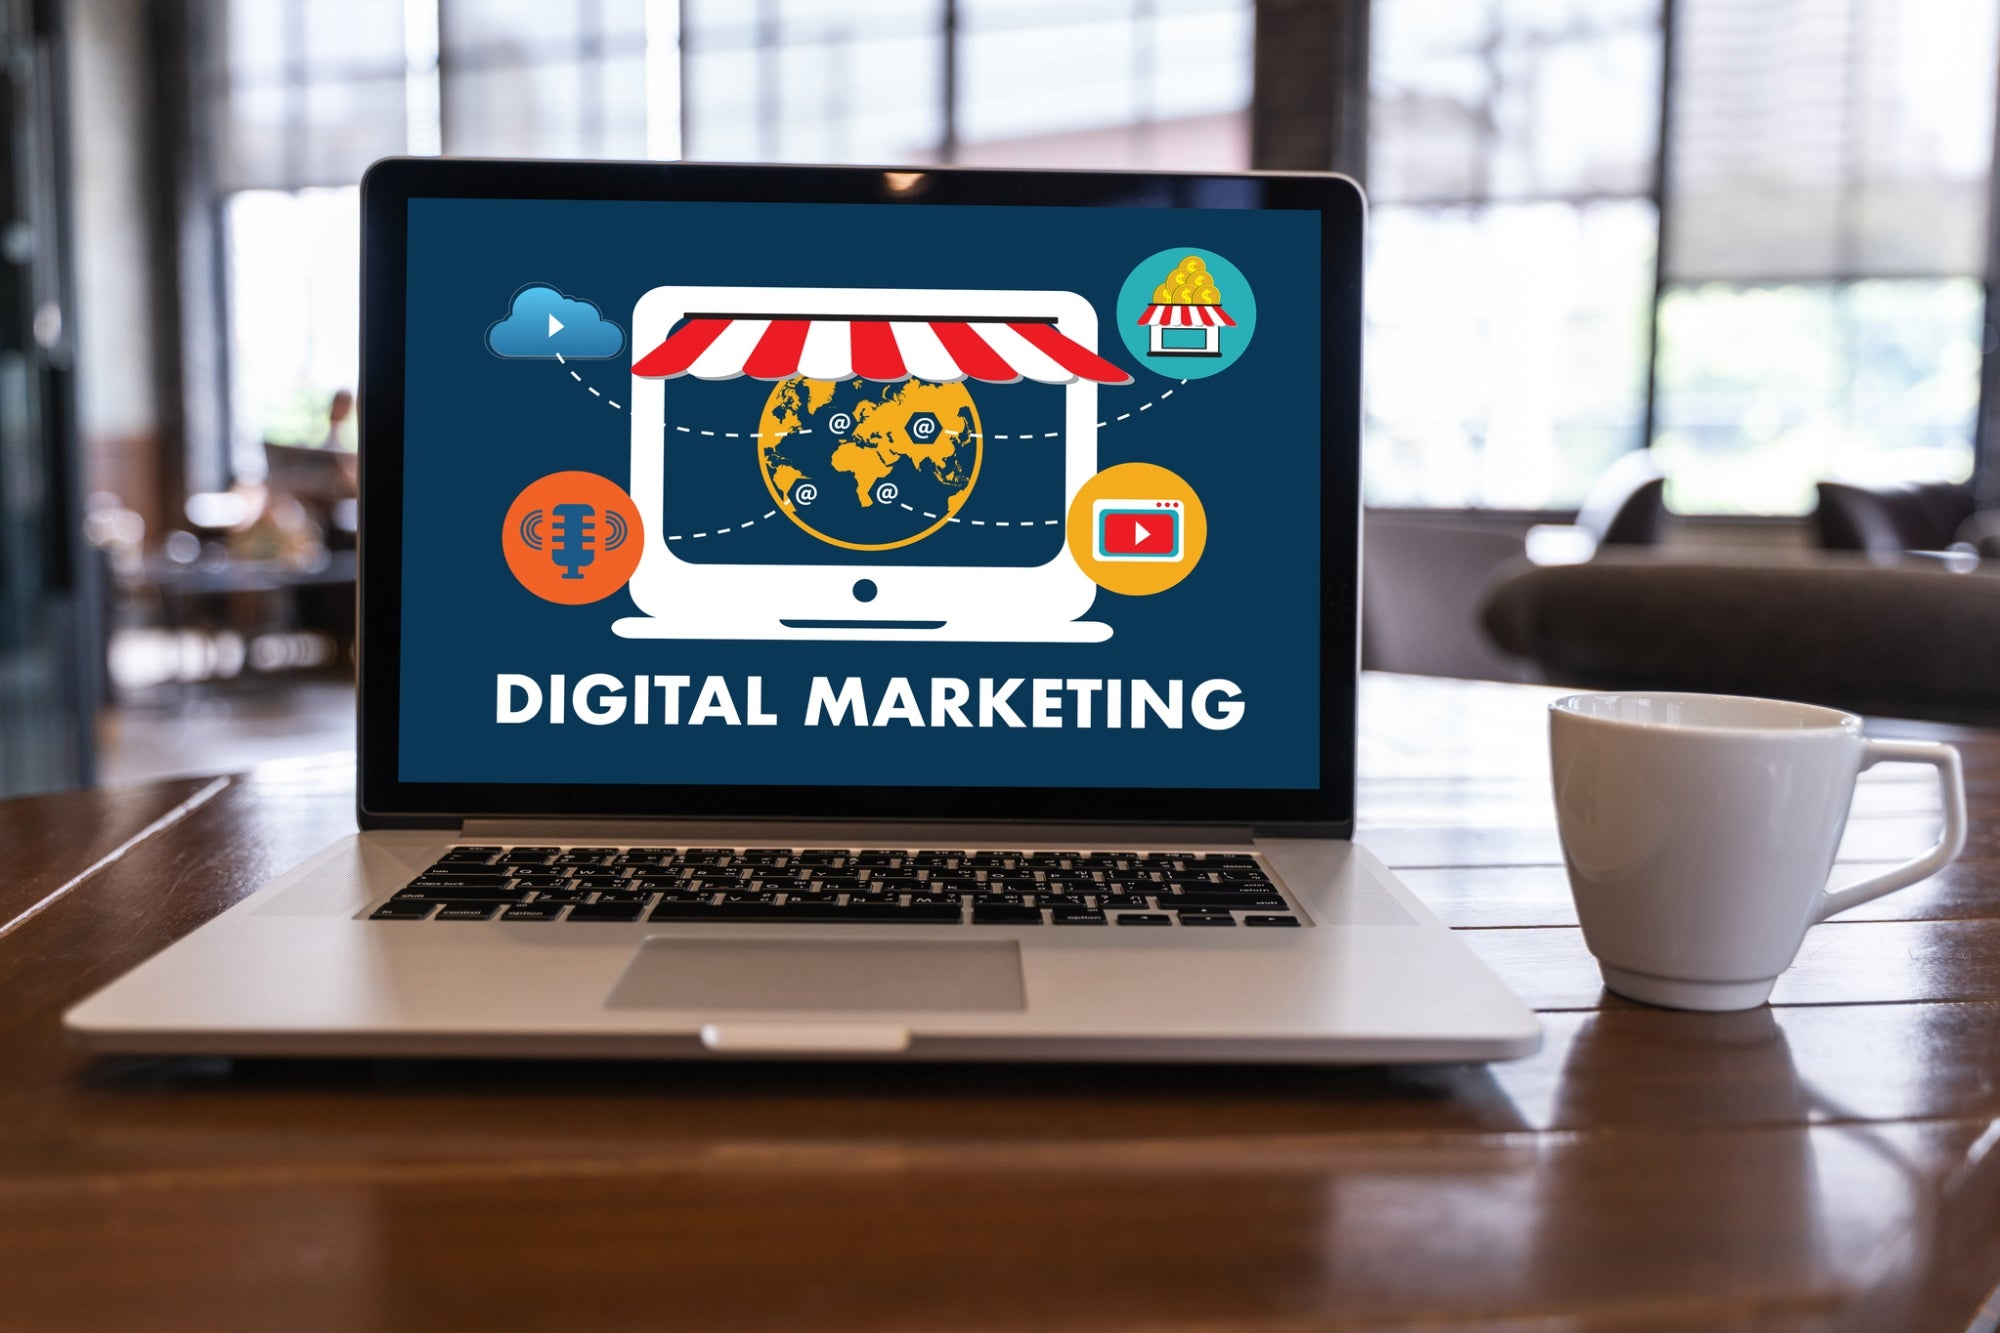 4 Sure-Fire Digital Marketing Strategies To Use in 2021